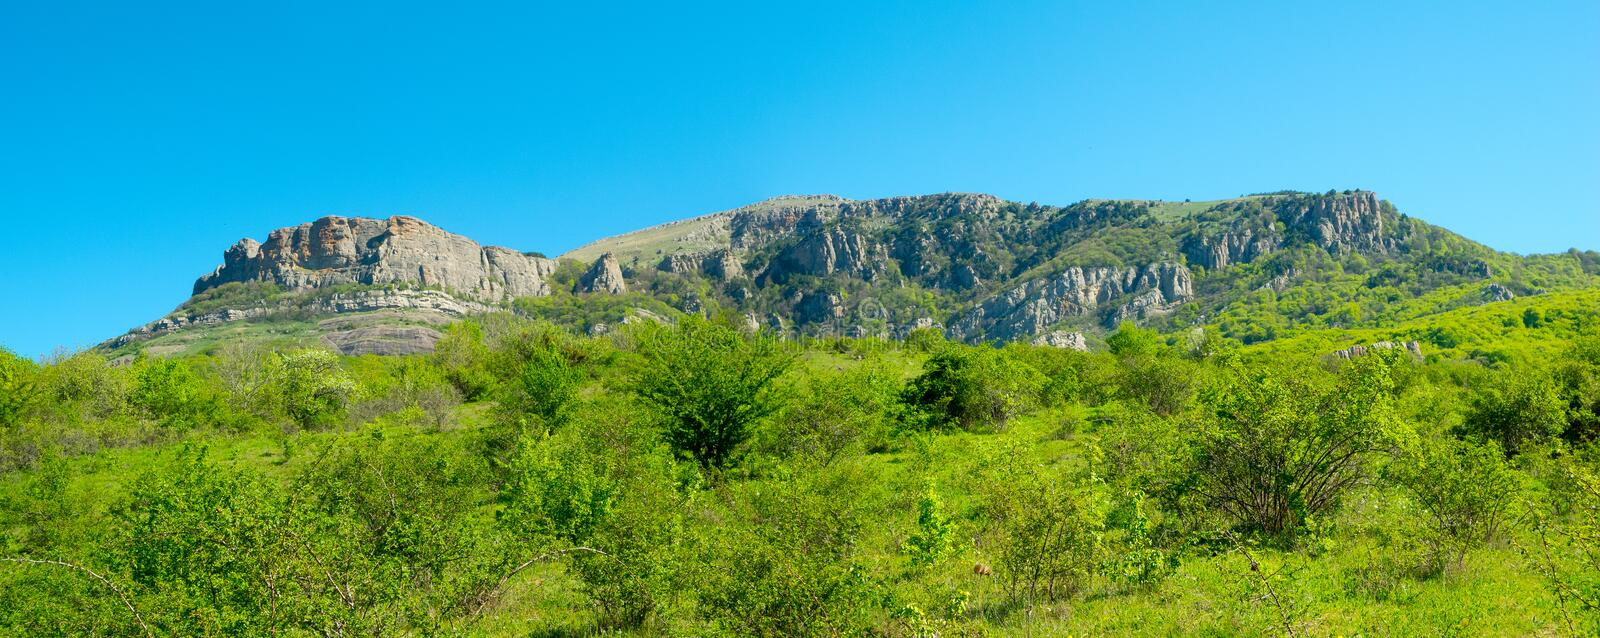 Download Summer Mountain Landscape In Crimea Stock Image - Image: 35846243